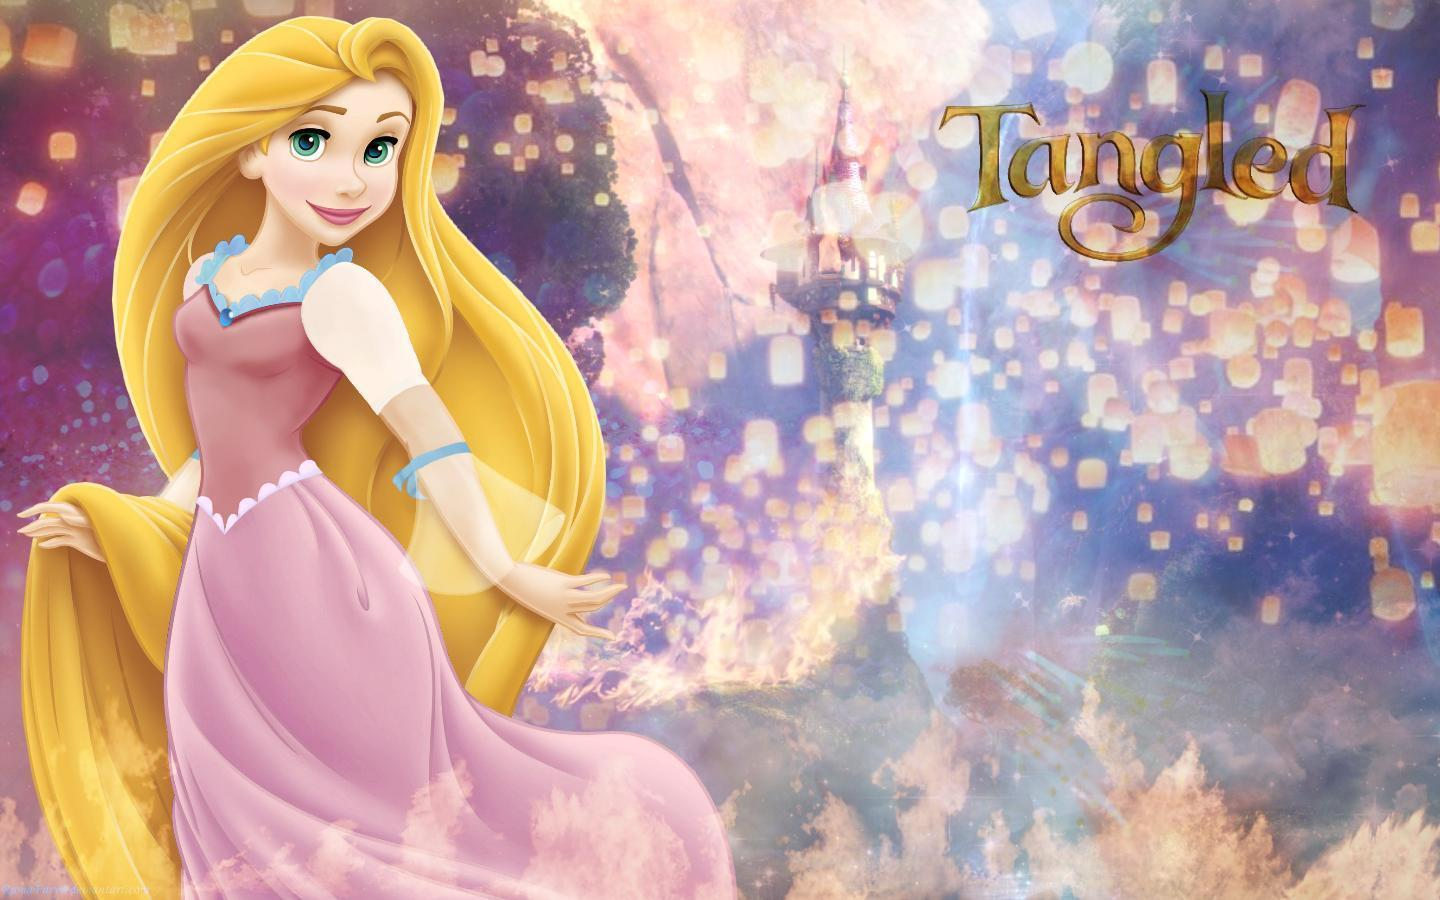 Rapunzel's Tower - Tangled Wallpaper (33104749) - Fanpop